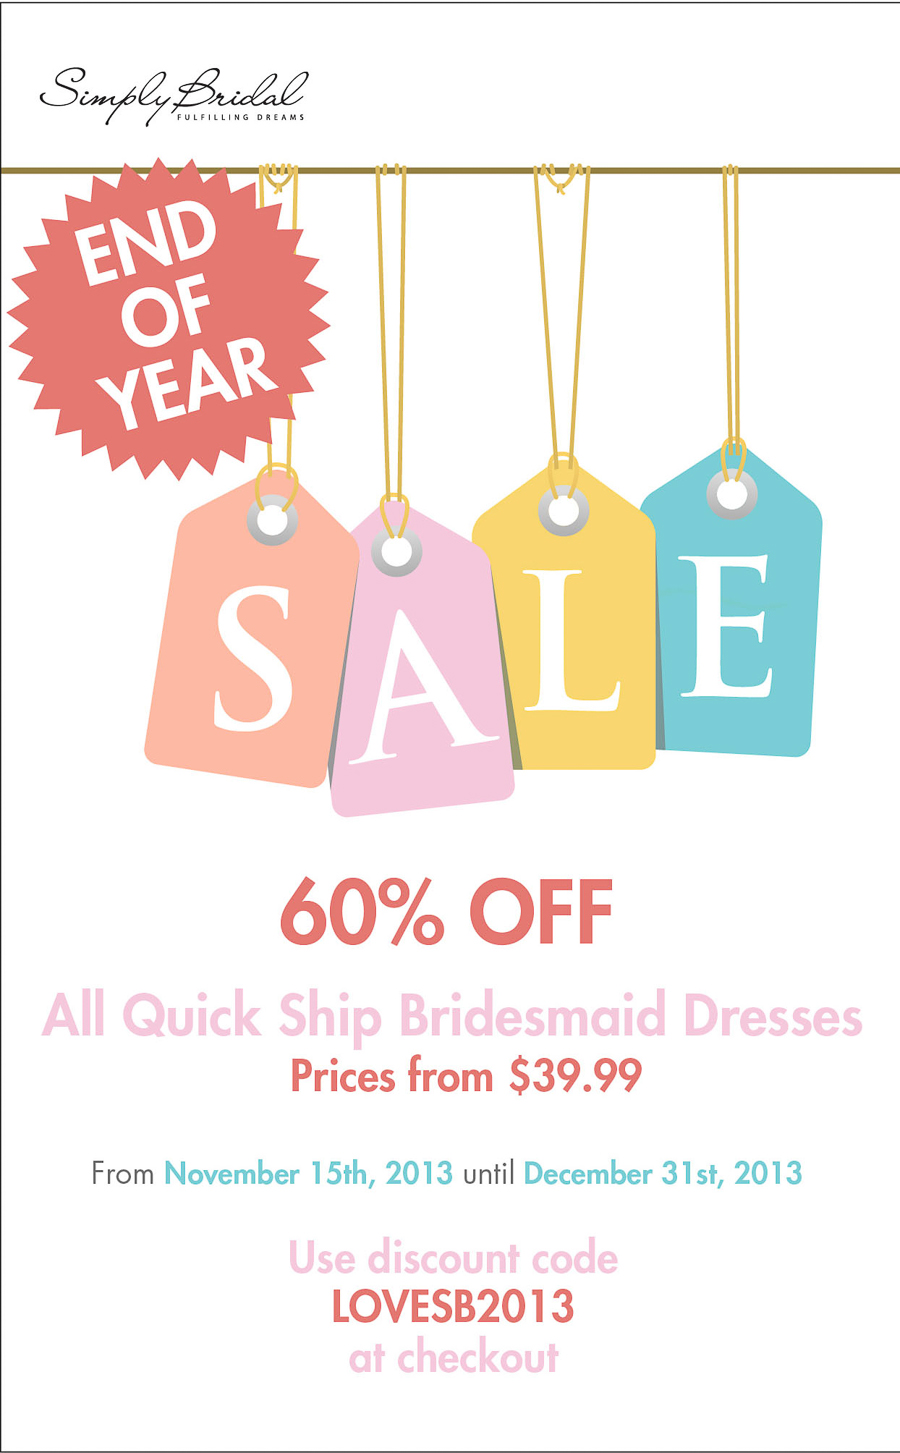 Newport Beach Wedding Photographer Simply Bridal Year End Sale